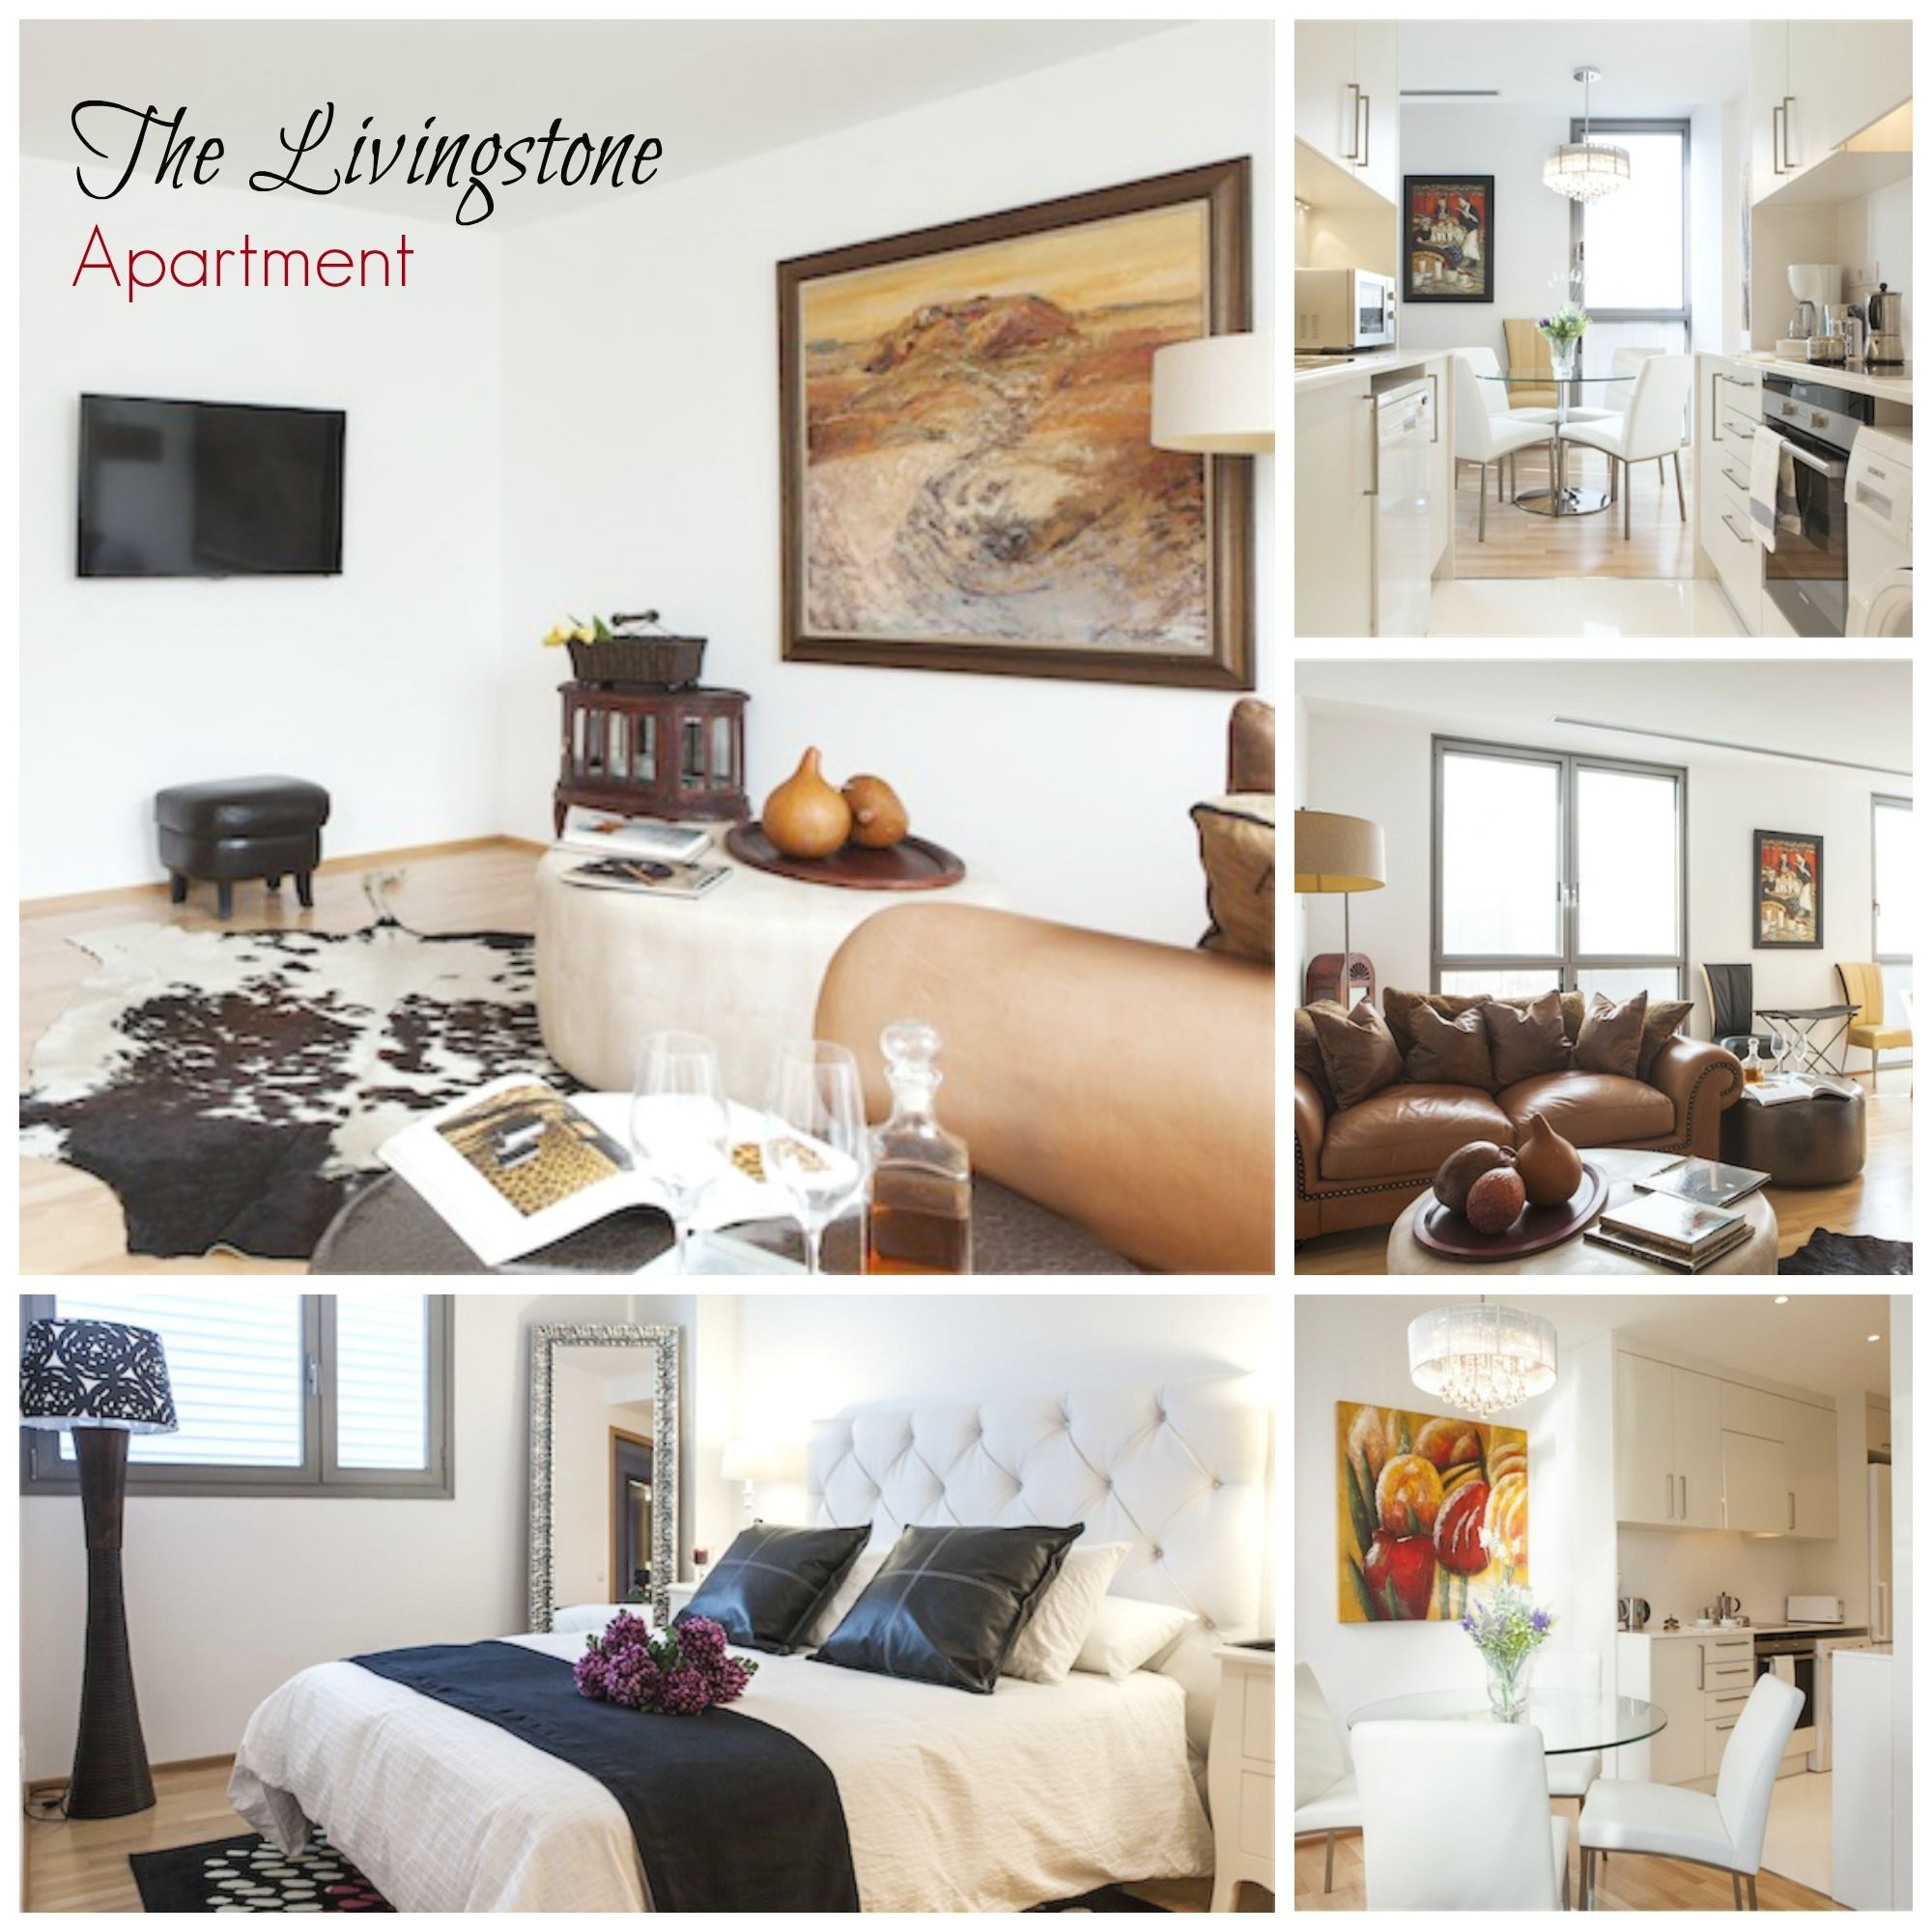 The livingston apartment luxury apartment bedrooms bathrooms